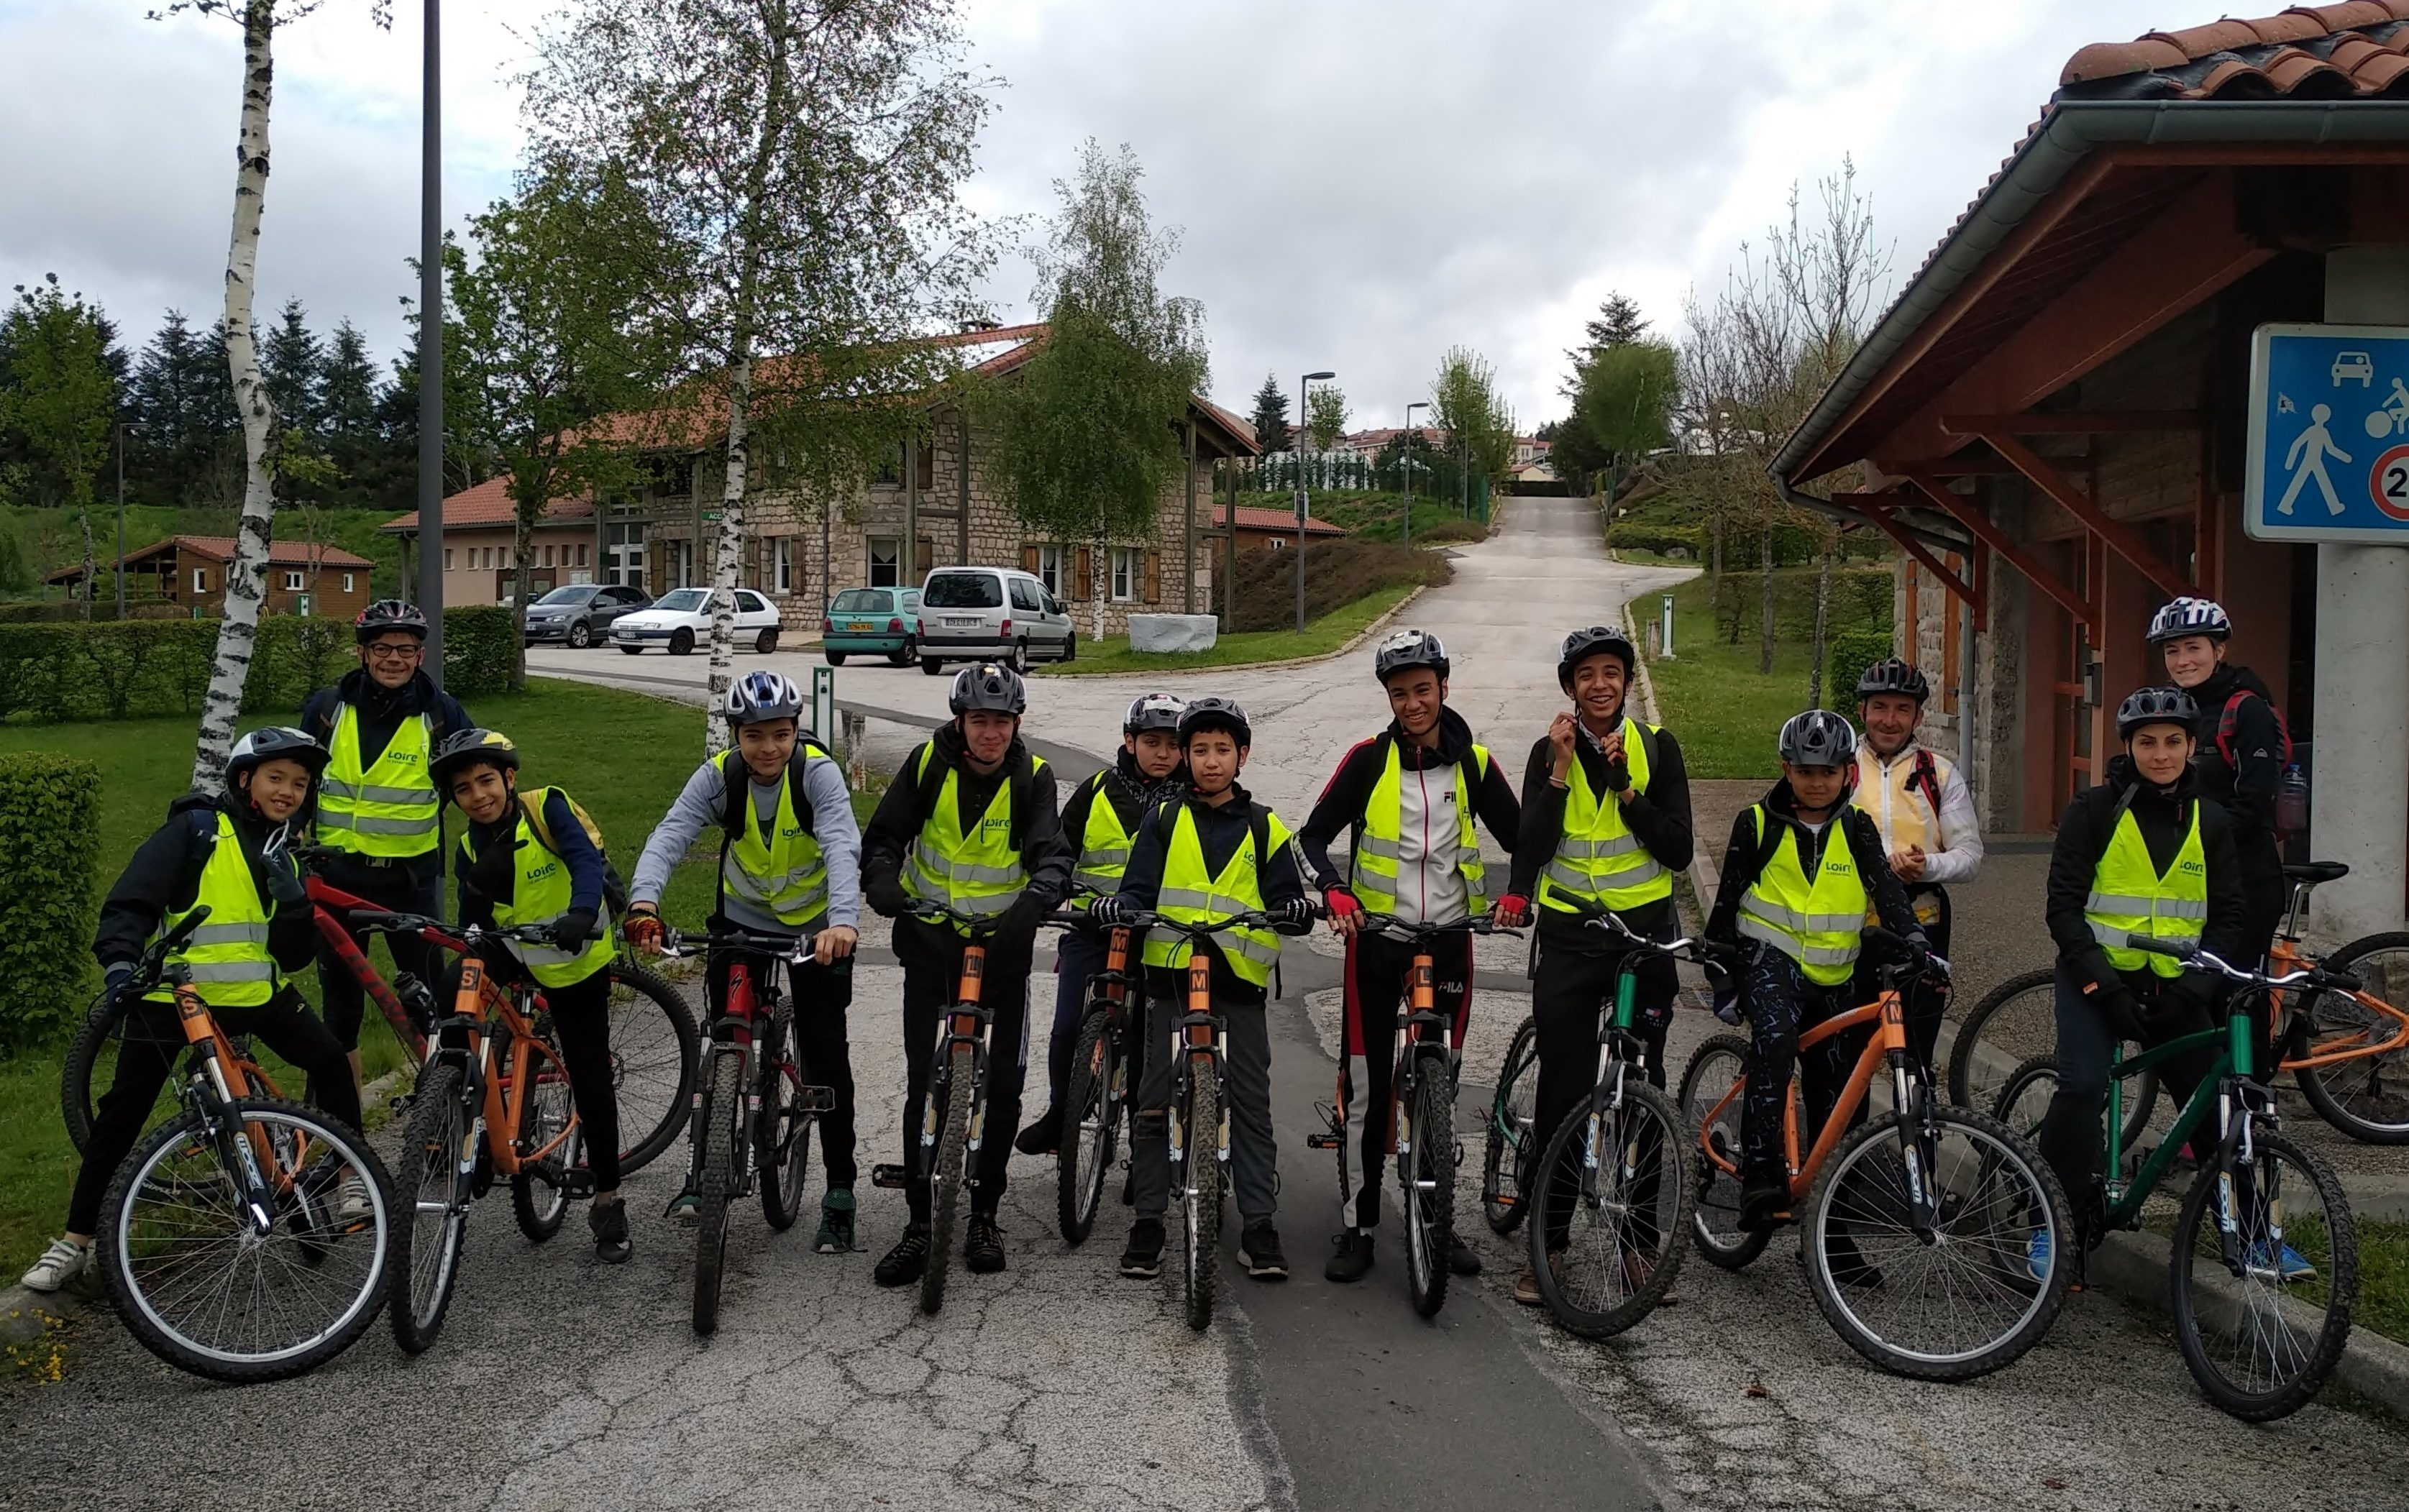 Le groupe de la section sportive VTT